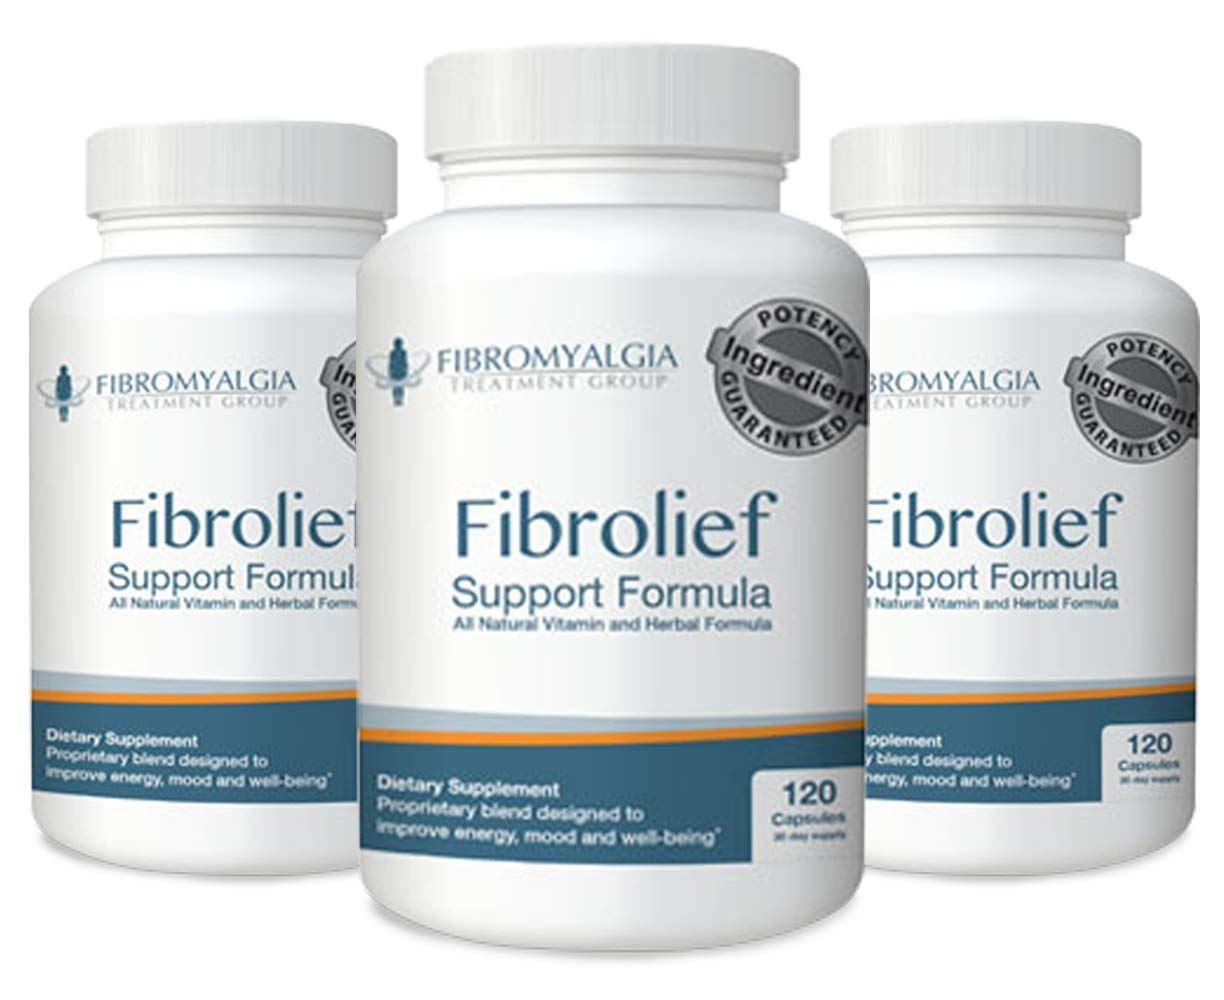 Fibrolief: Fibromyalgia Support Supplement - Manufactured in FDA-Approved Facility - Formulated for Maximum Bioavailability and Alternative Pain Relief - 120 Count (30 Day Supply) - 3pk